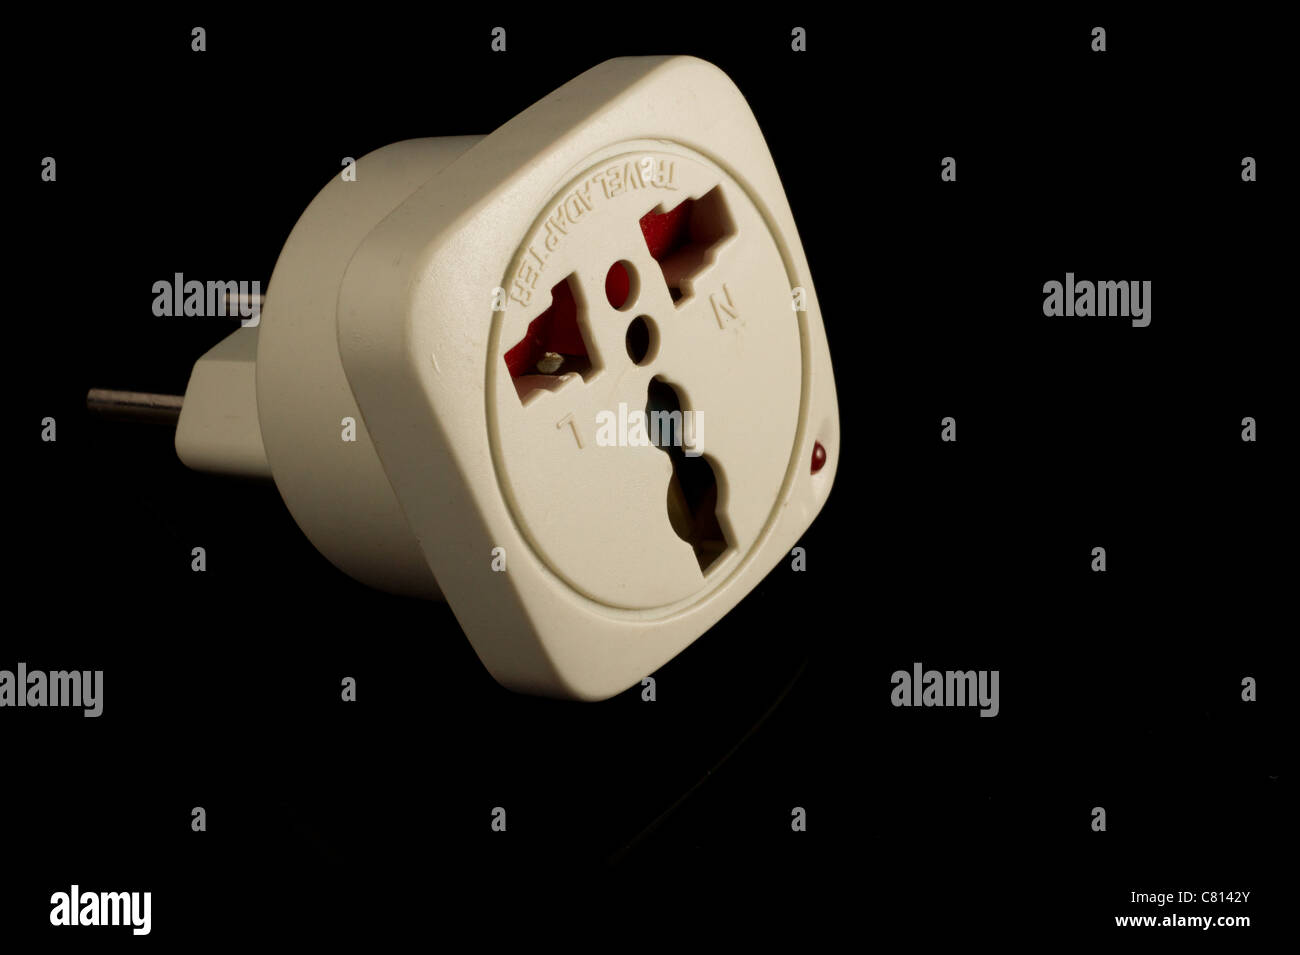 Electrical converter for different kinds of electrical sockets Stock Photo